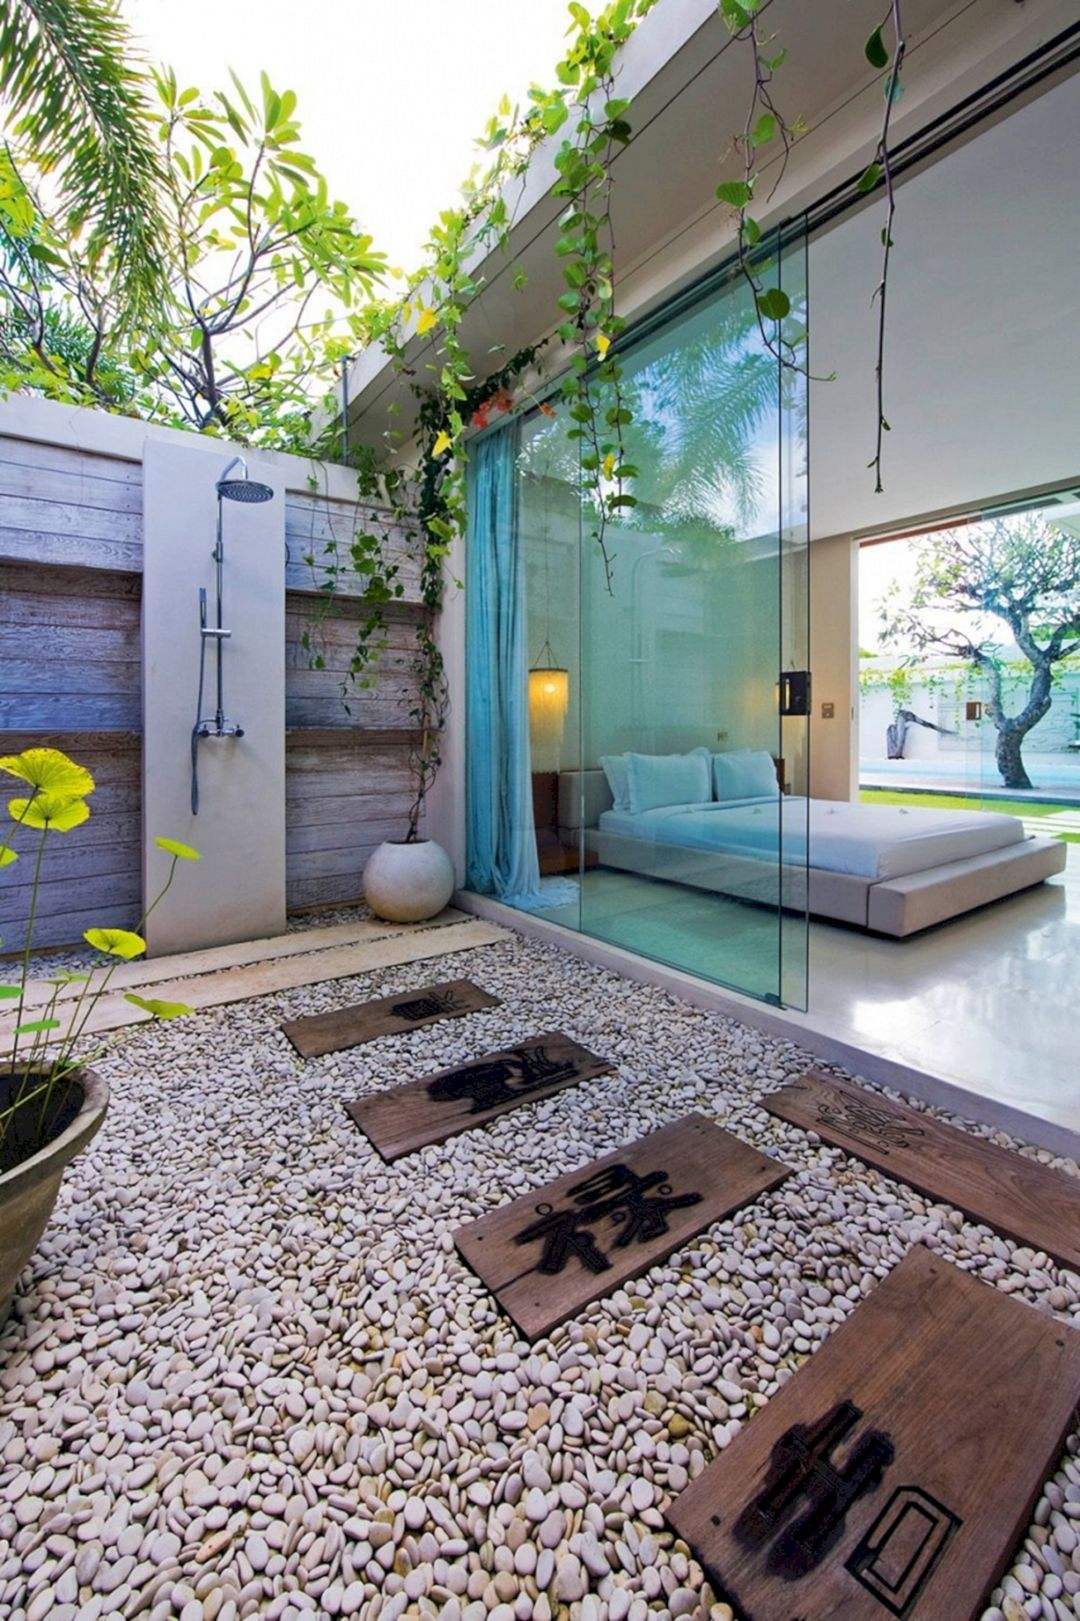 15 Fascinating Outdoor Shower Design Ideas For Bathing Feels In Paradise Outdoor Bathroom Design Outdoor Bedroom Outdoor Bathrooms